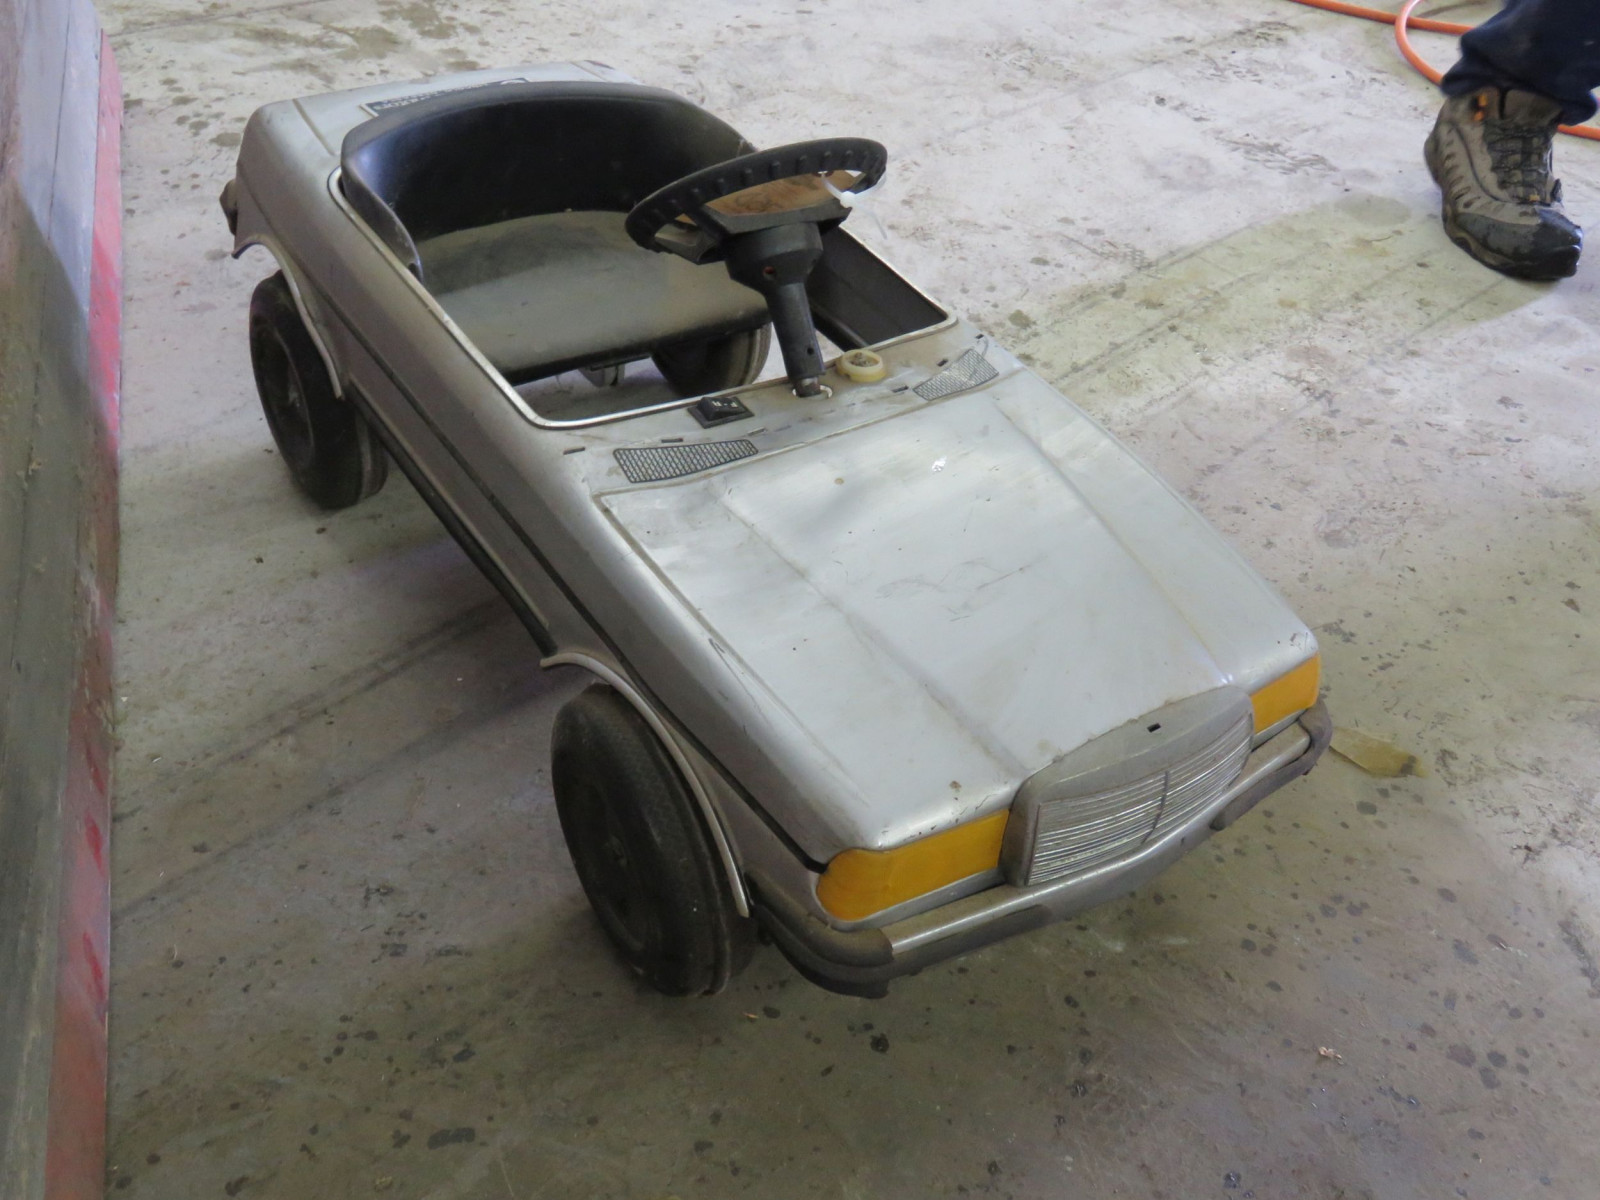 1987 Mercedes Pedal Car - Image 2